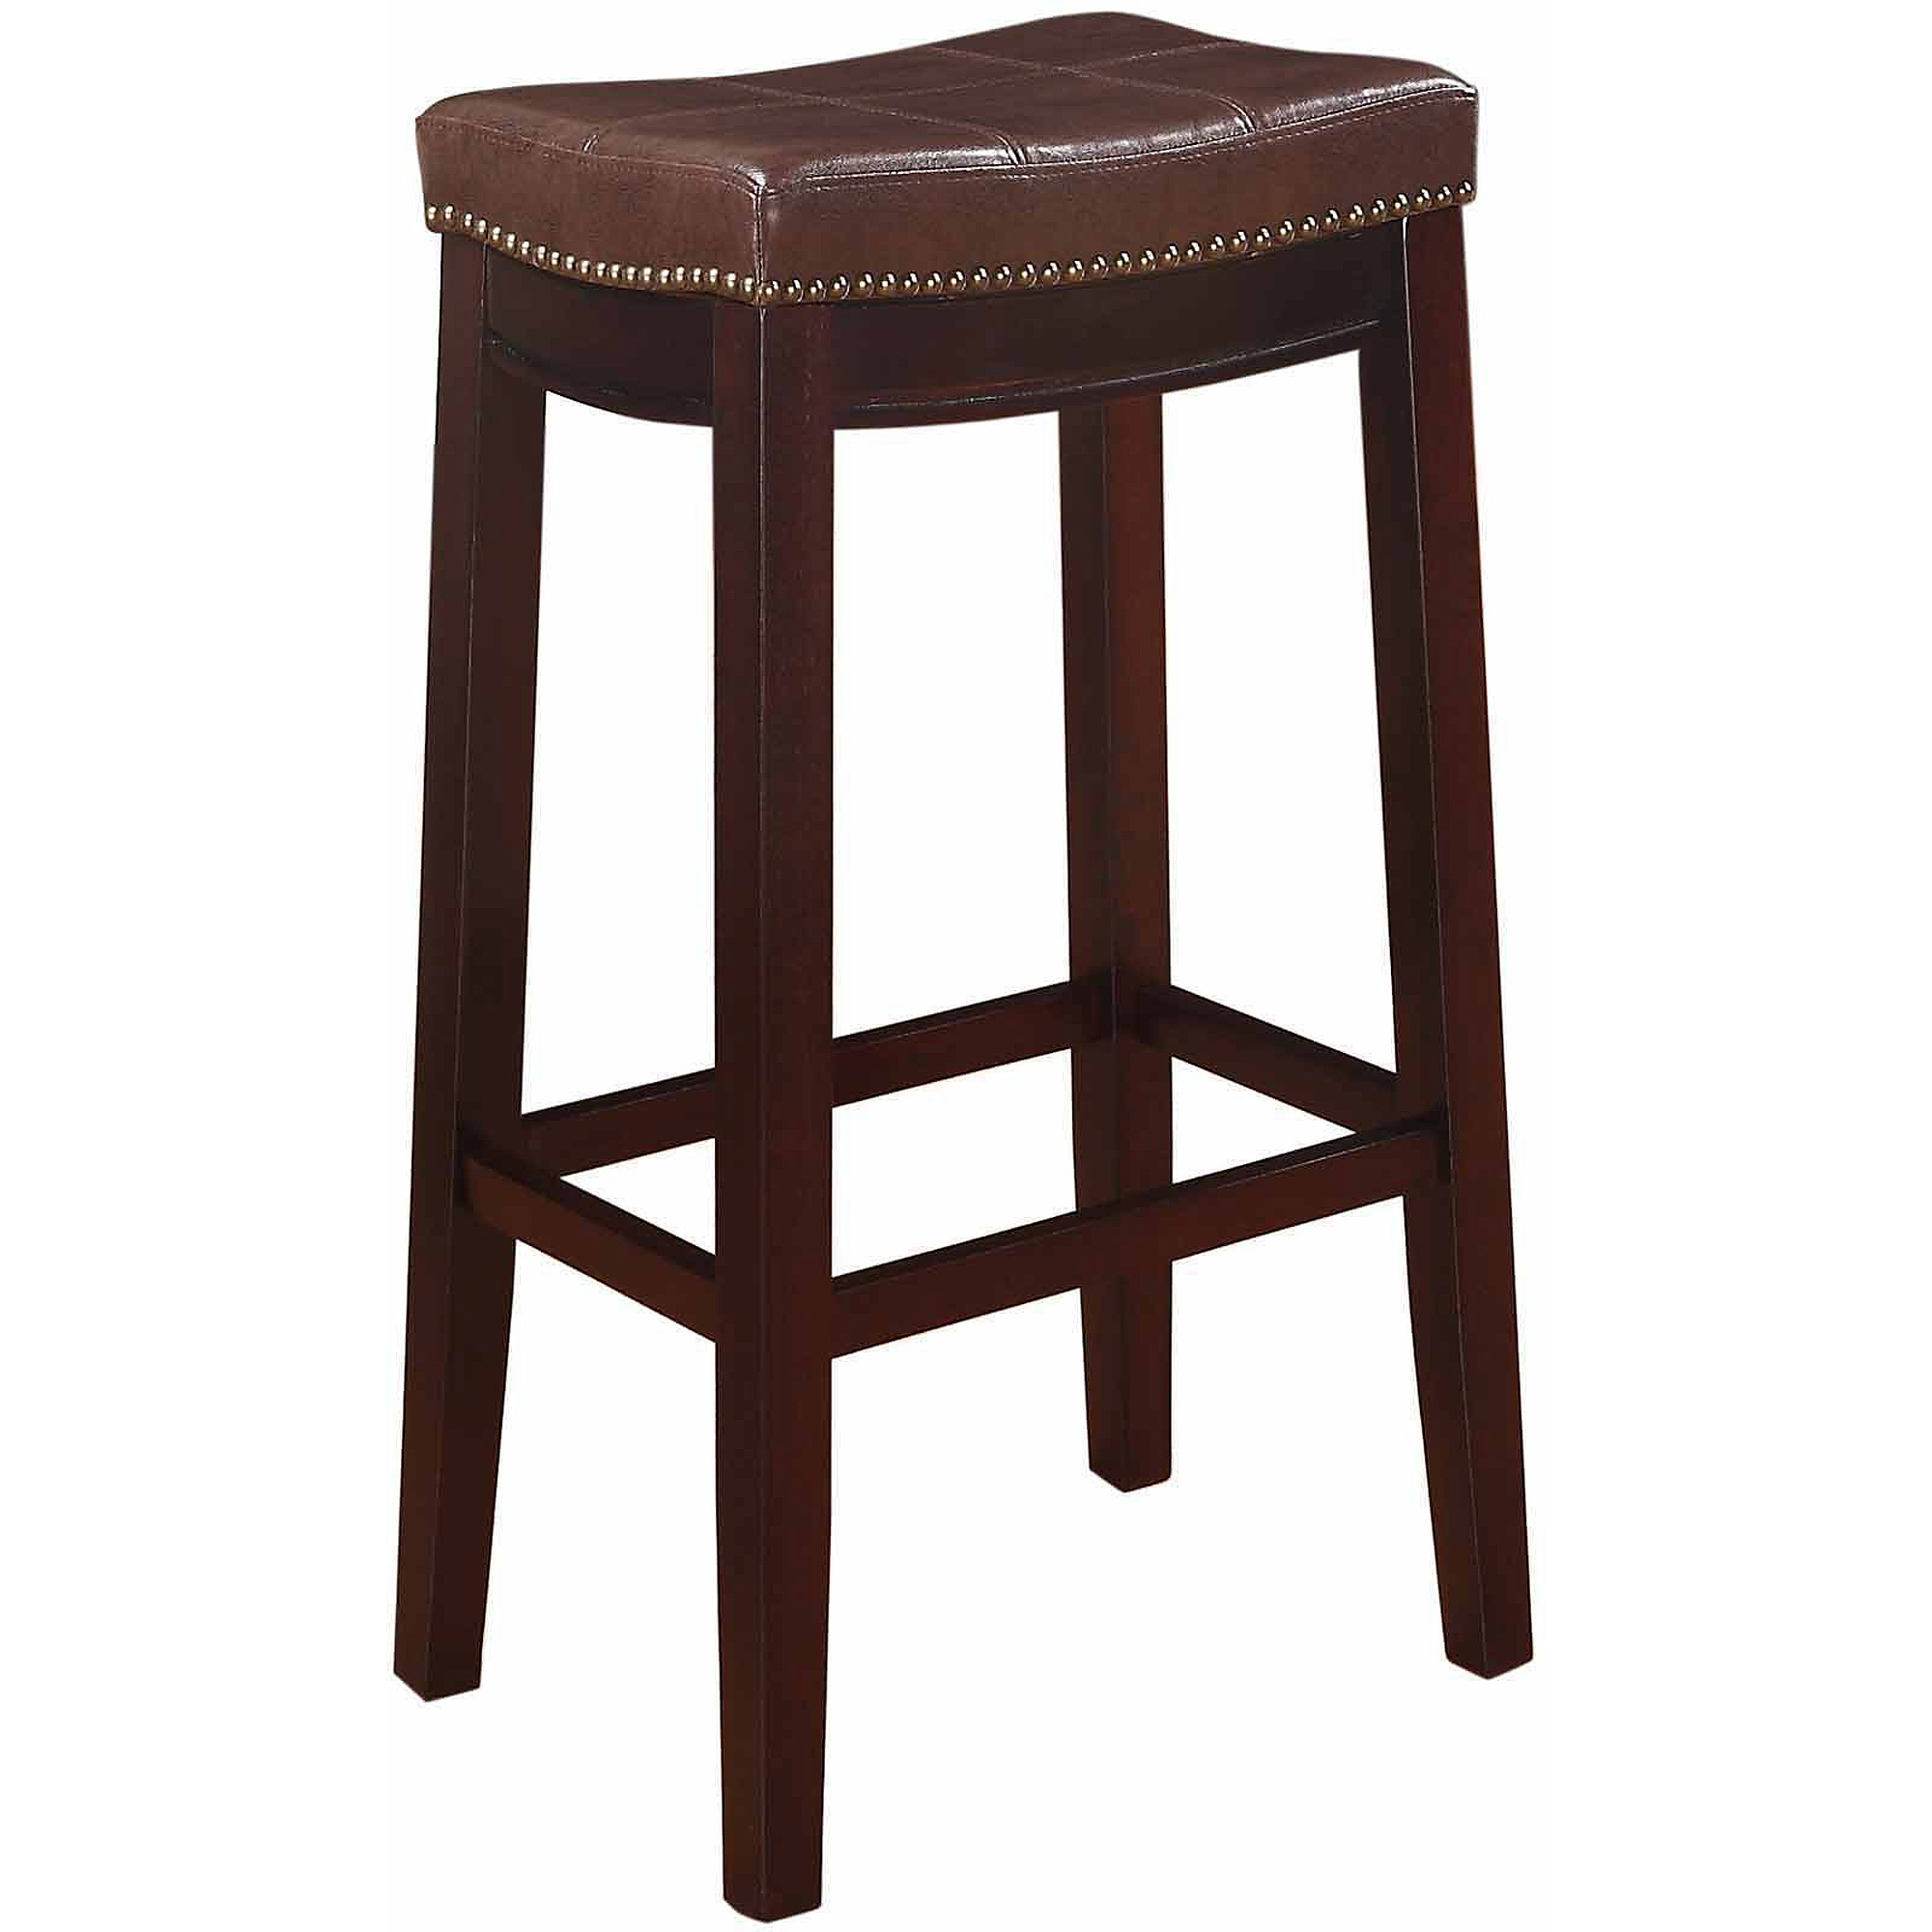 Linon claridge patches bar stool mutliple colors 32 inch seat height walmart com